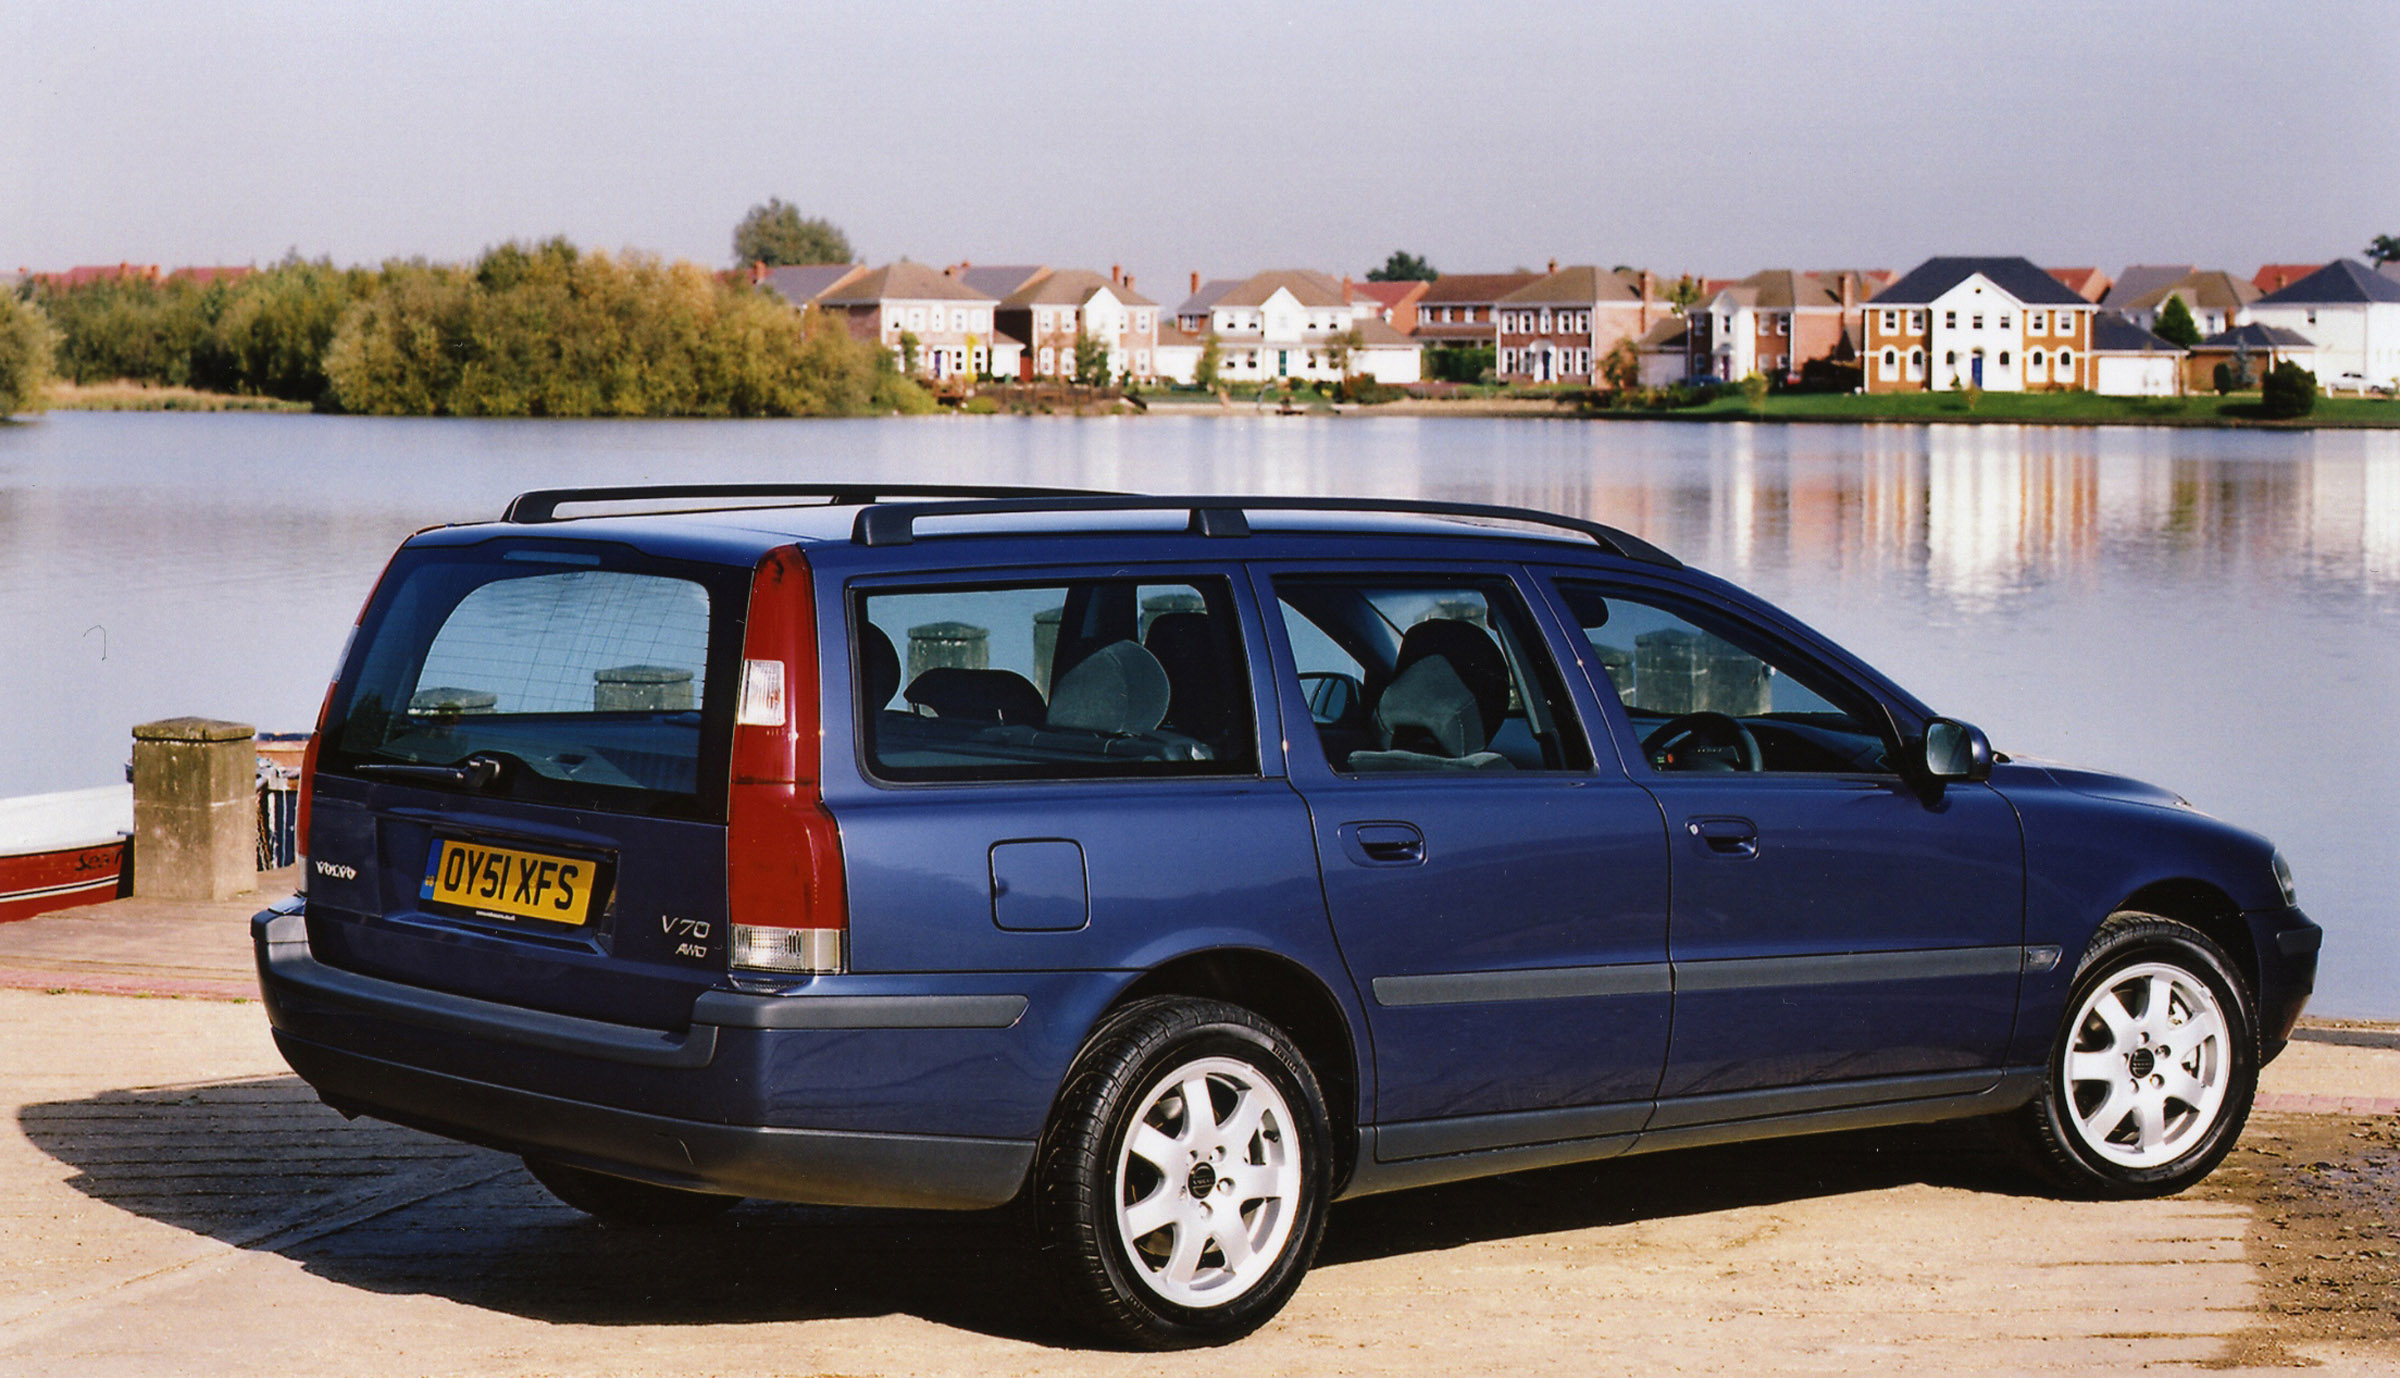 Car Wallpapers 2014 Download Volvo V70 2001 Picture 14178